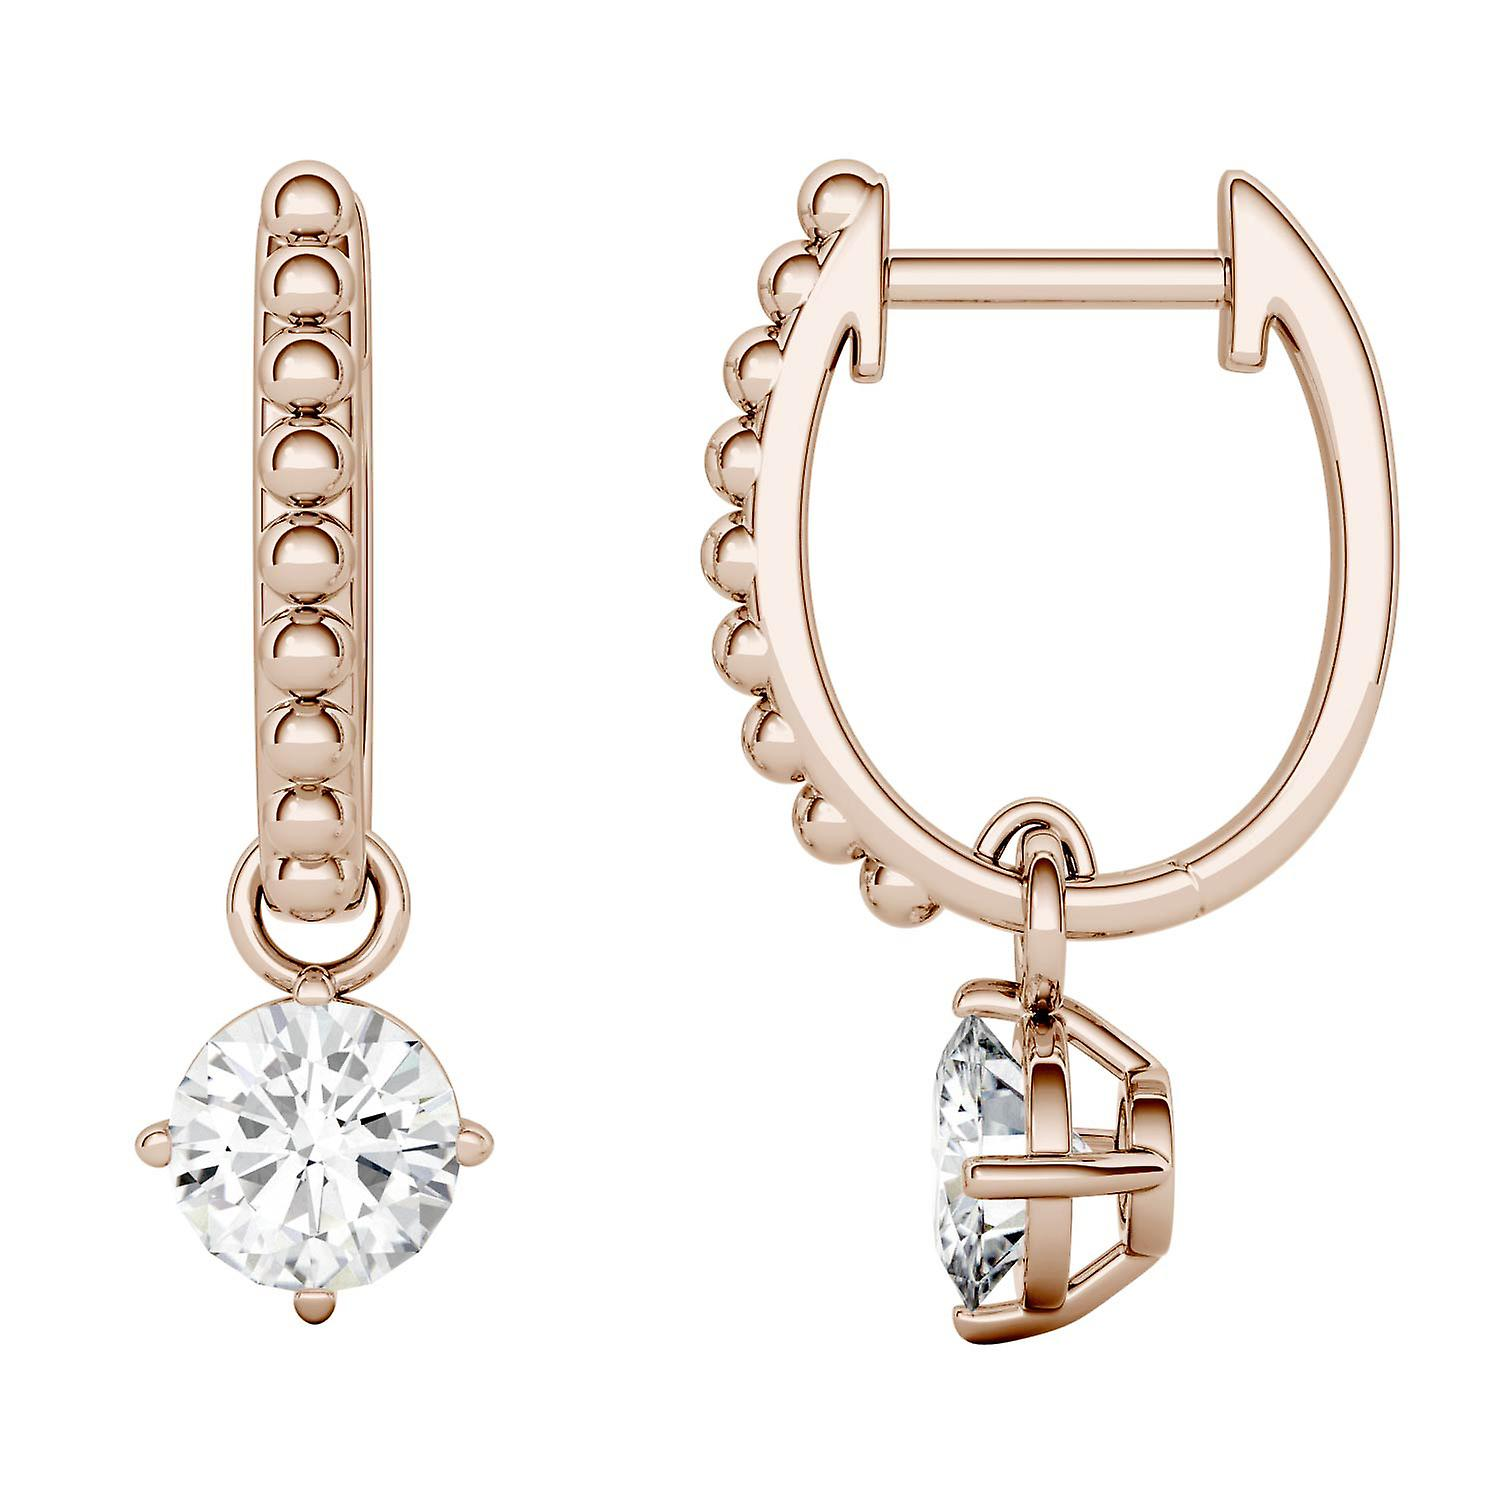 14K Rose or Moissanite by Charles & Colvard 5mm Round Hoop boucles d'oreilles, 1.00cttw DEW